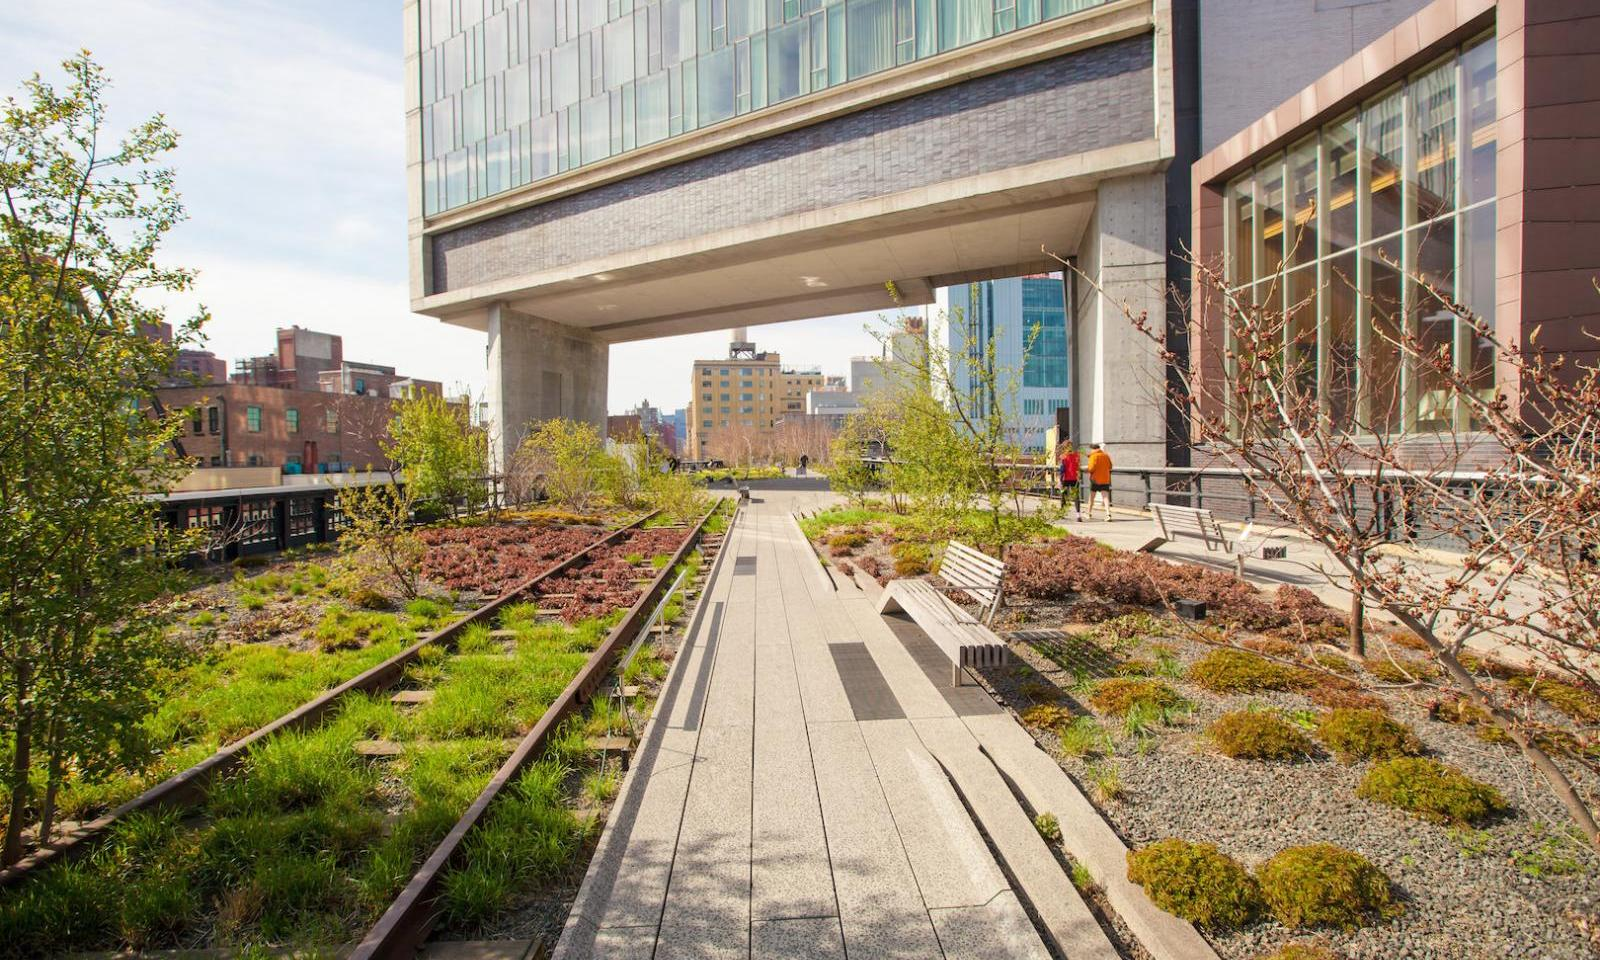 The High Line im Meatpacking District